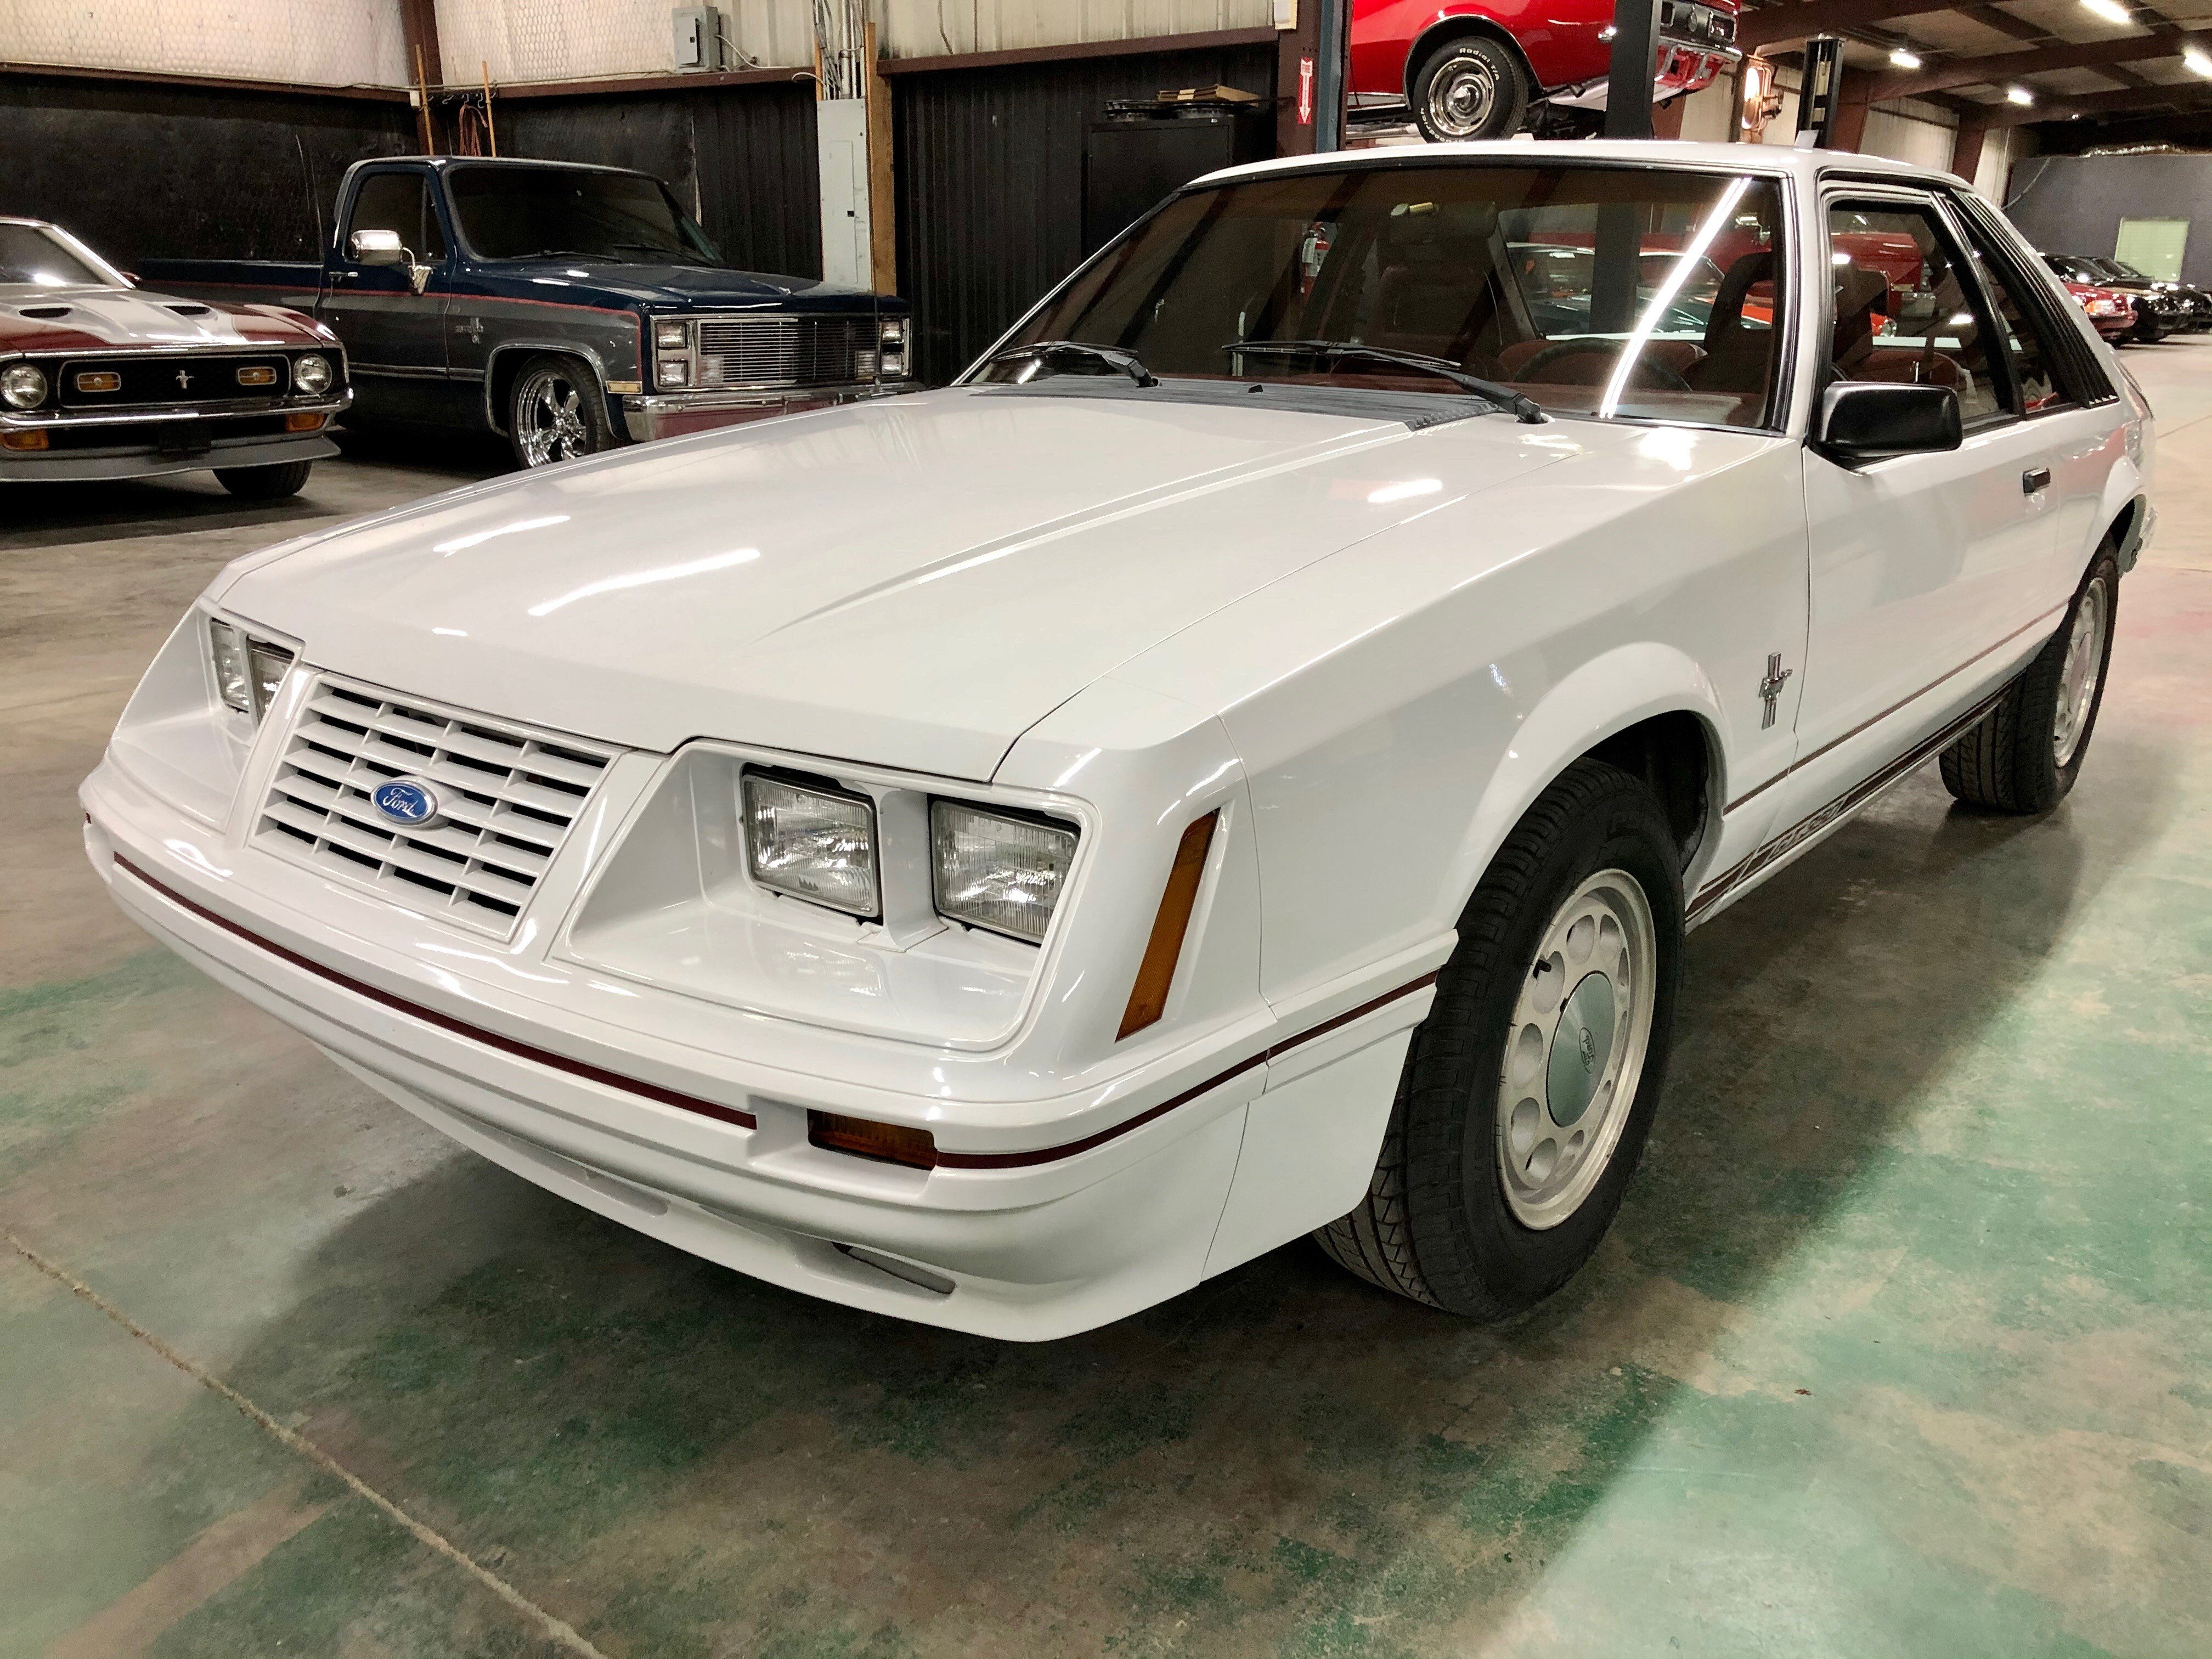 1984 ford mustang classics for sale classics on autotrader 1984 ford mustang classics for sale